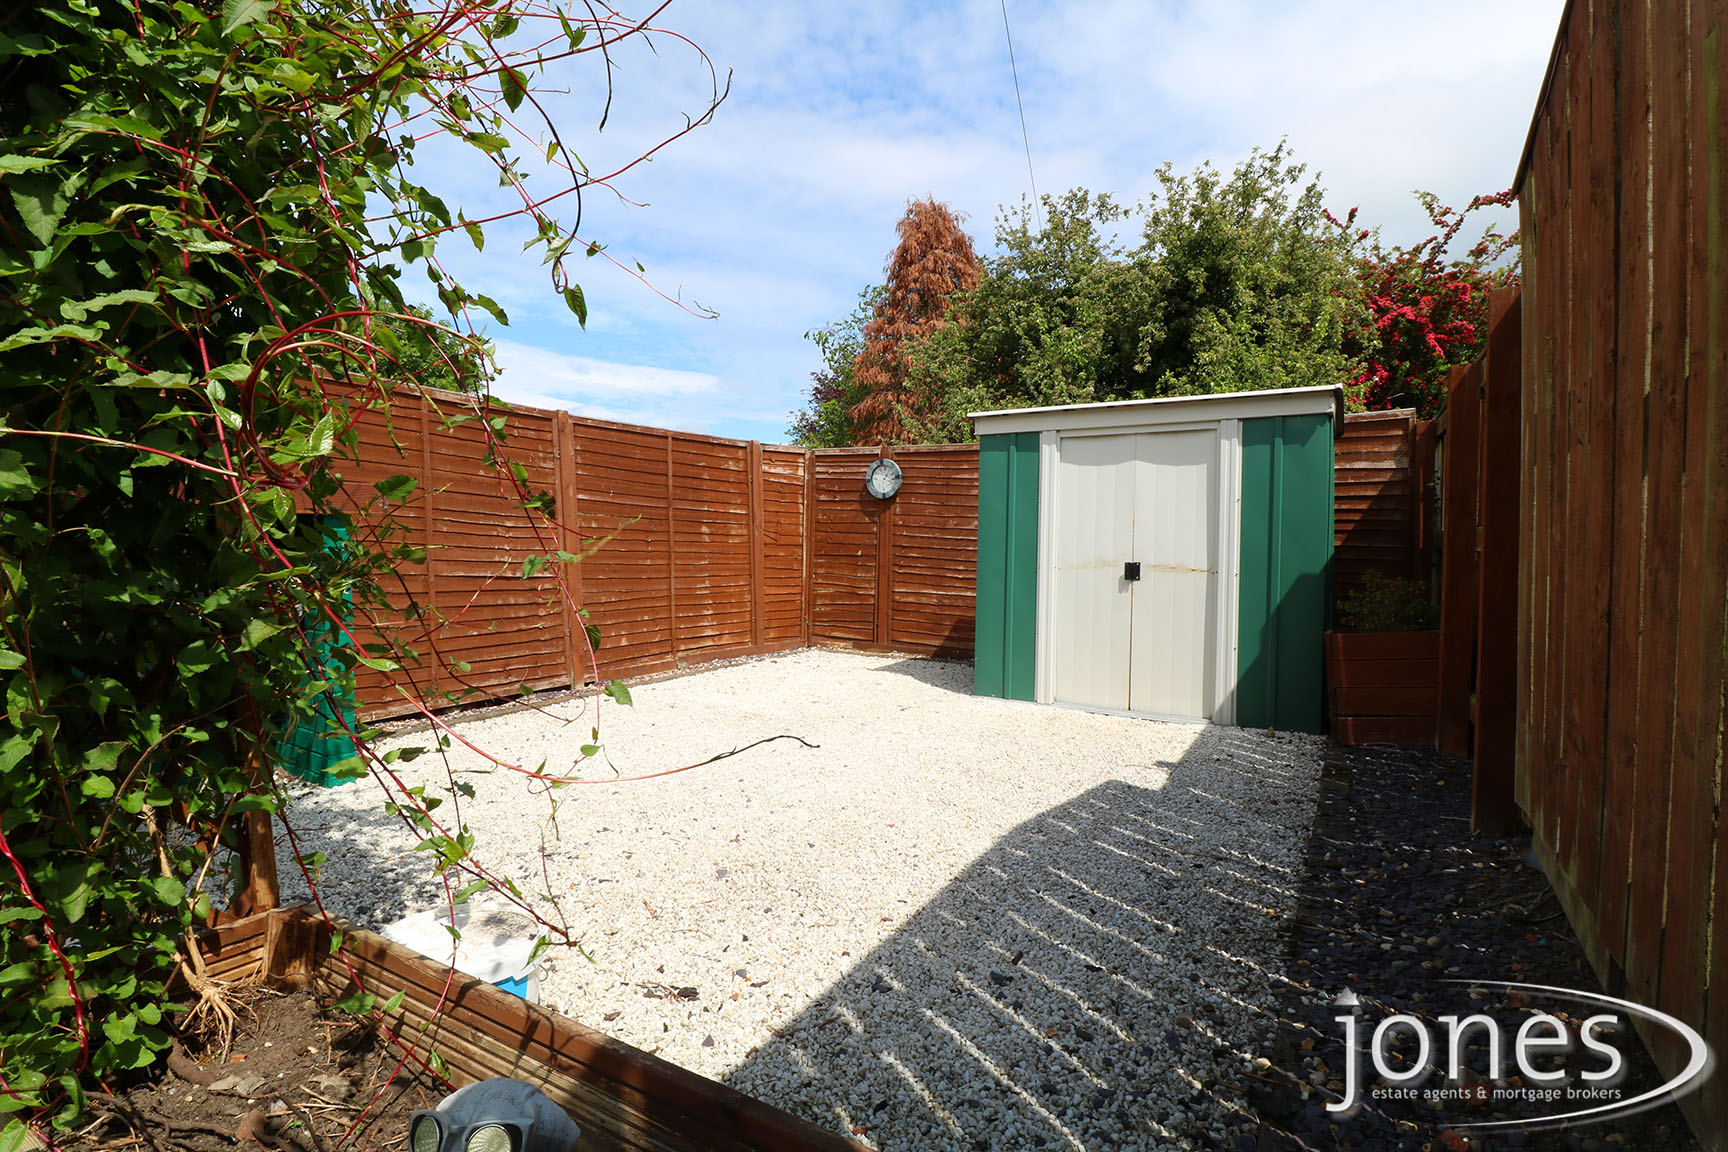 Home for Sale Let - Photo 16 Station Road Norton Stockton on Tees TS20 1PE